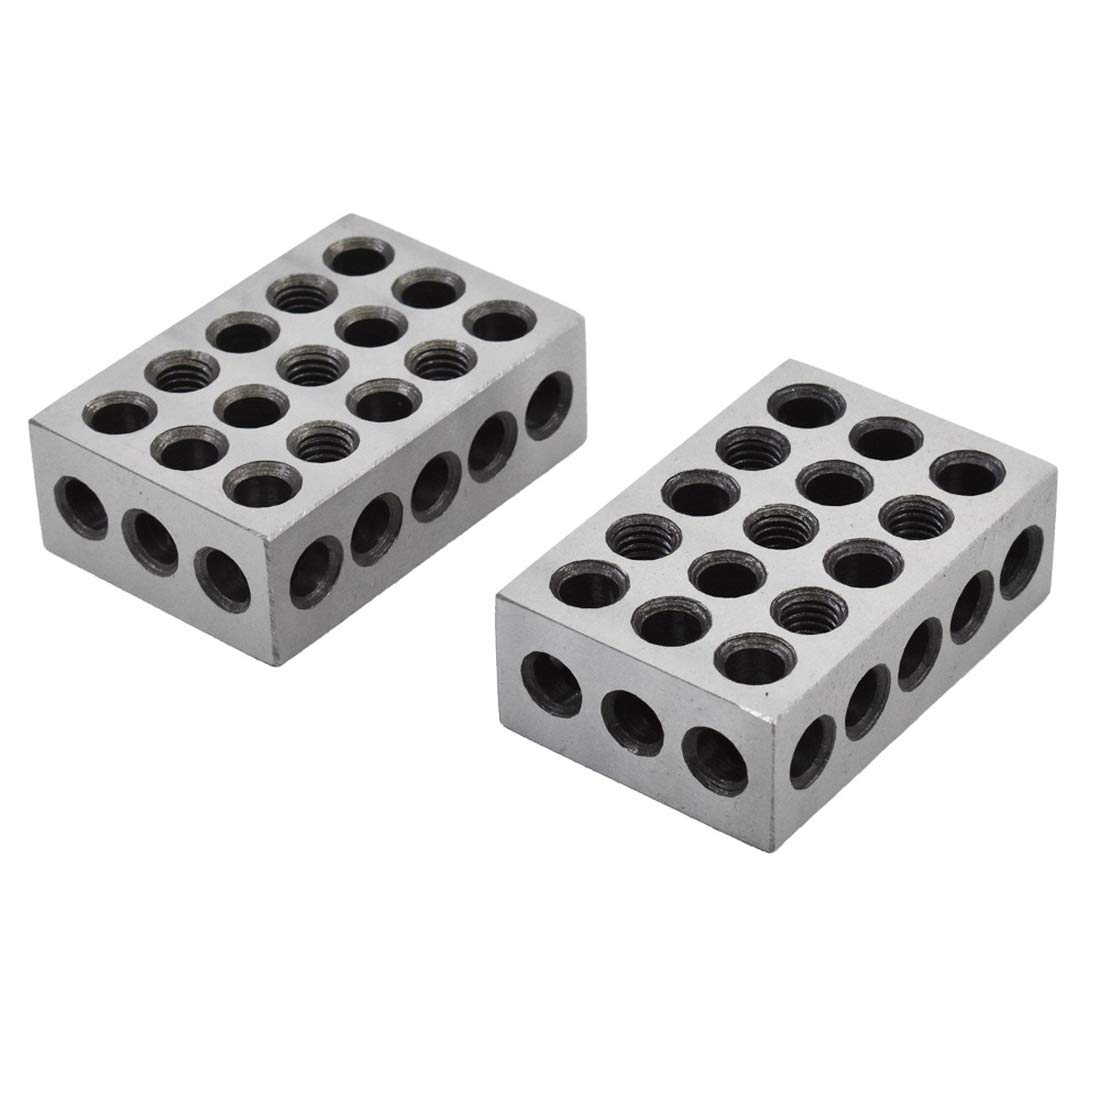 Fafeicy Precision Gauge Blocks 1-2-3 Block Matched Milling Machinist 23 Holes with Screws Wrench Case